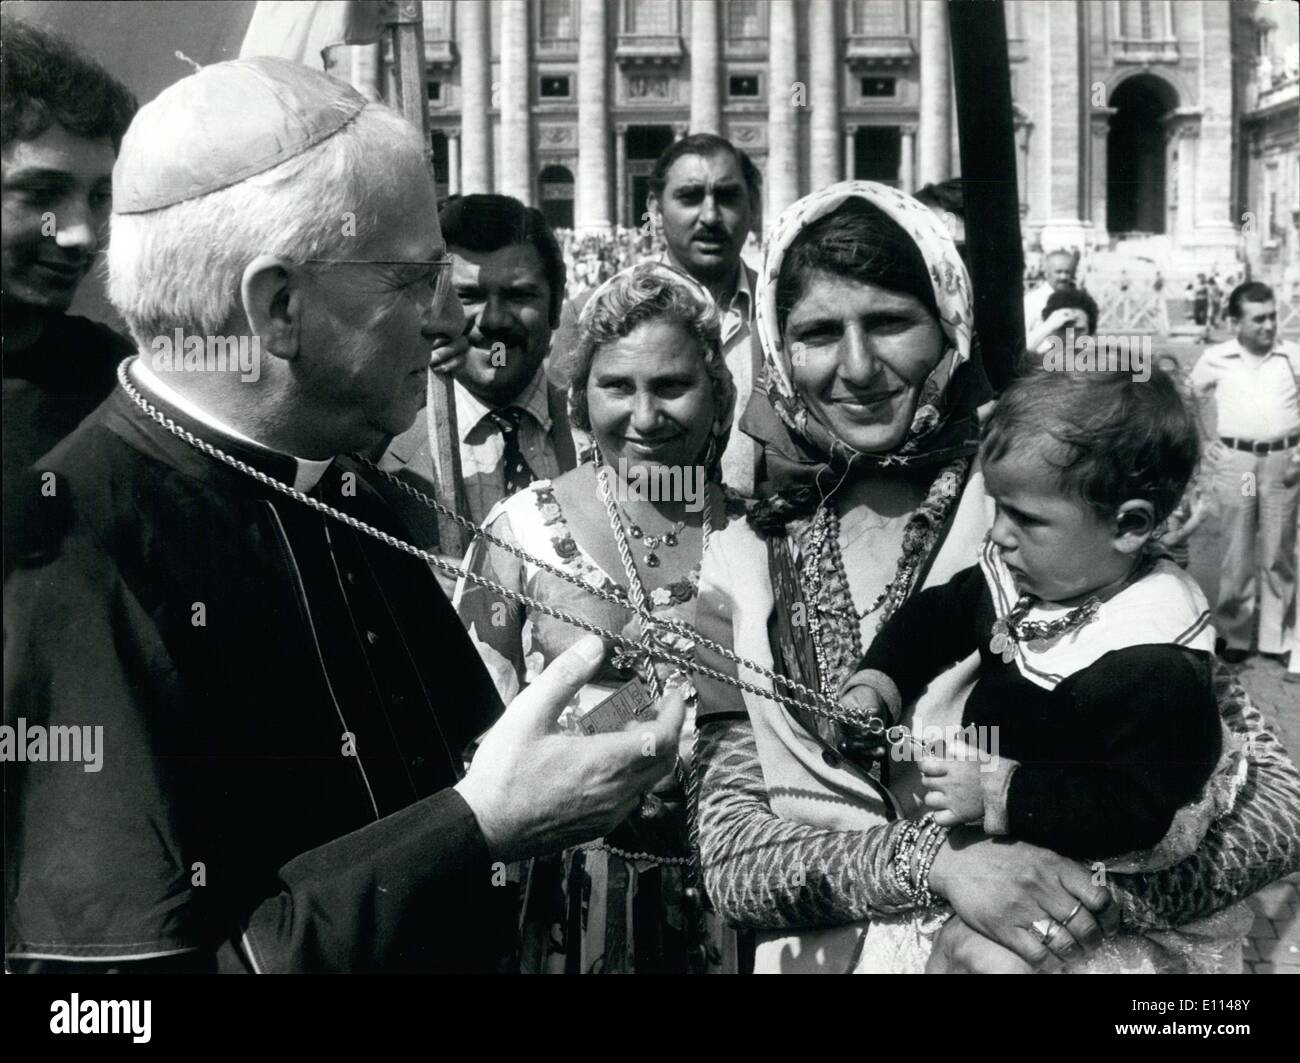 Aug. 08, 1975 - Holy year Piligrims: The gipsies came in Rome from all parts of the world, attended at the jubilee this morning - Stock Image